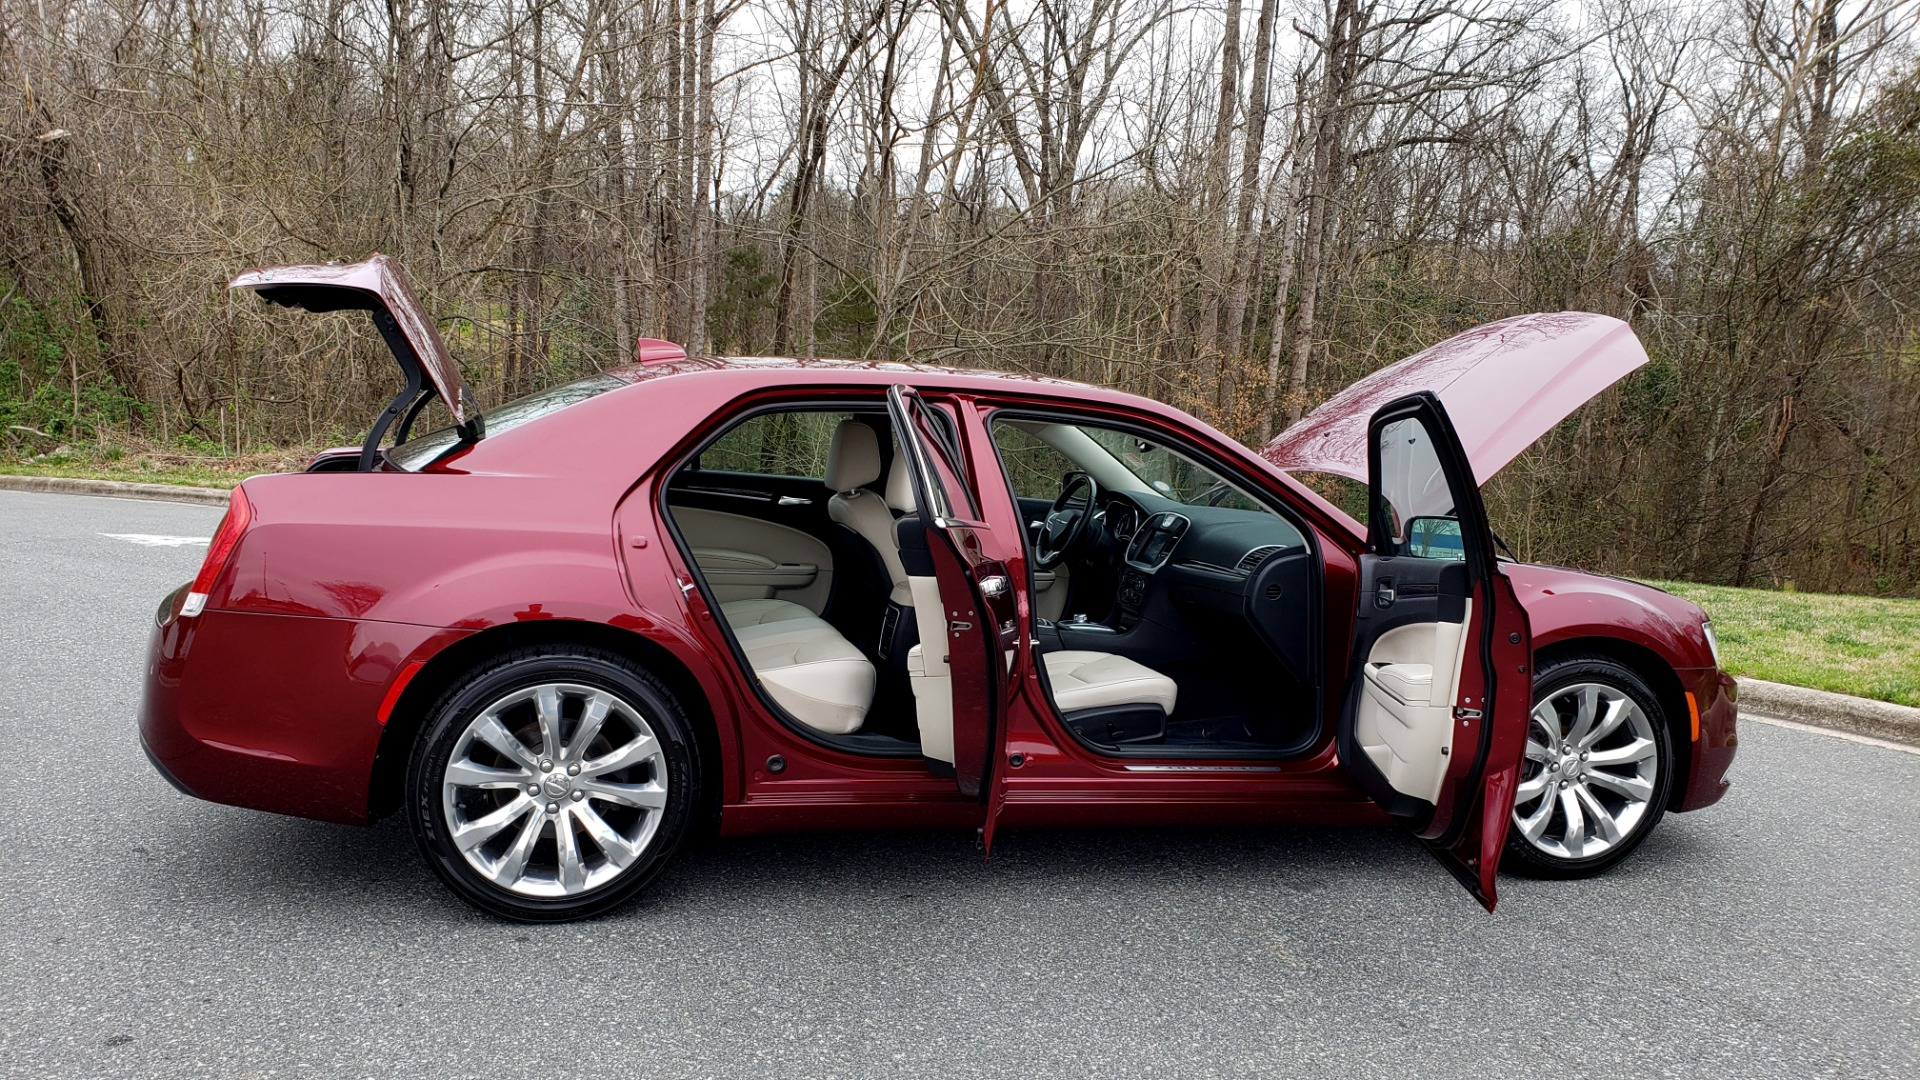 Used 2019 Chrysler 300 LIMITED / 3.6L V6 / 8-SPD AUTO / LEATHER / REARVIEW for sale Sold at Formula Imports in Charlotte NC 28227 15